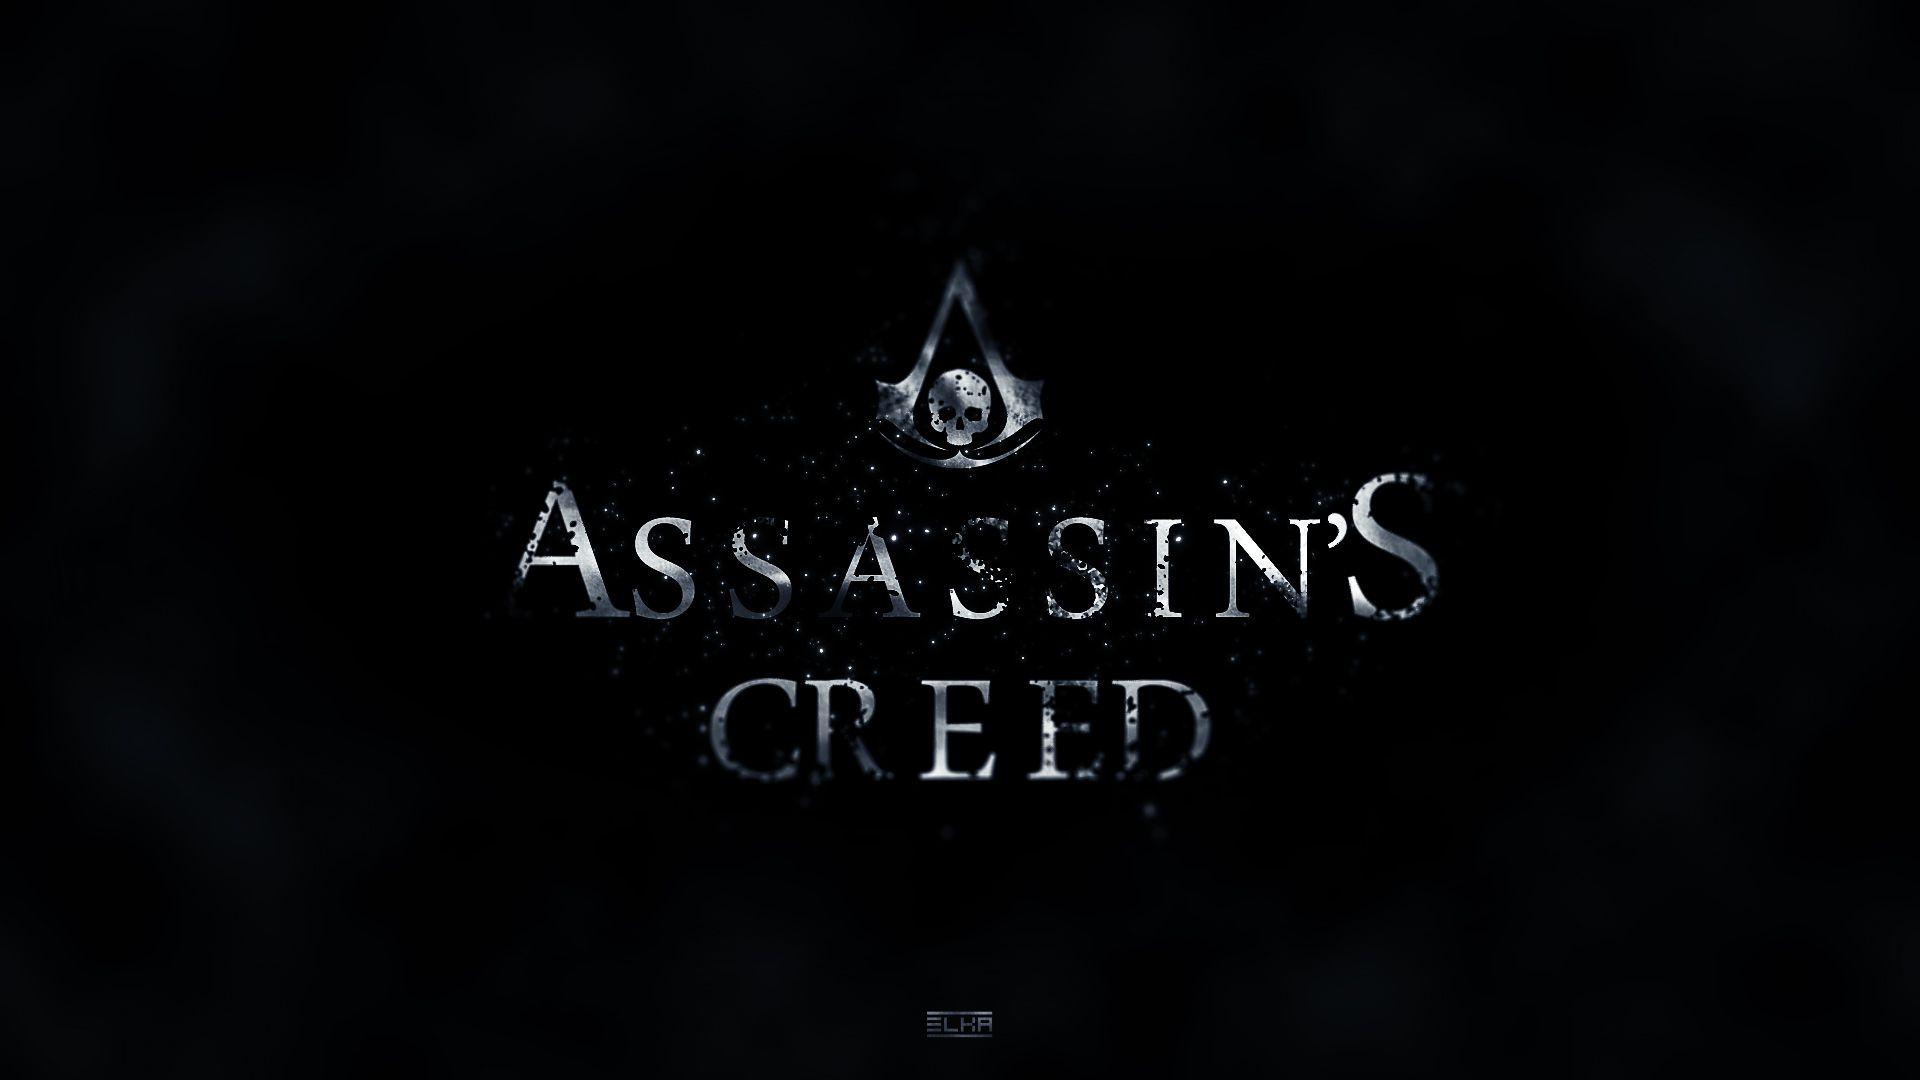 Assassin&creed 4 logo